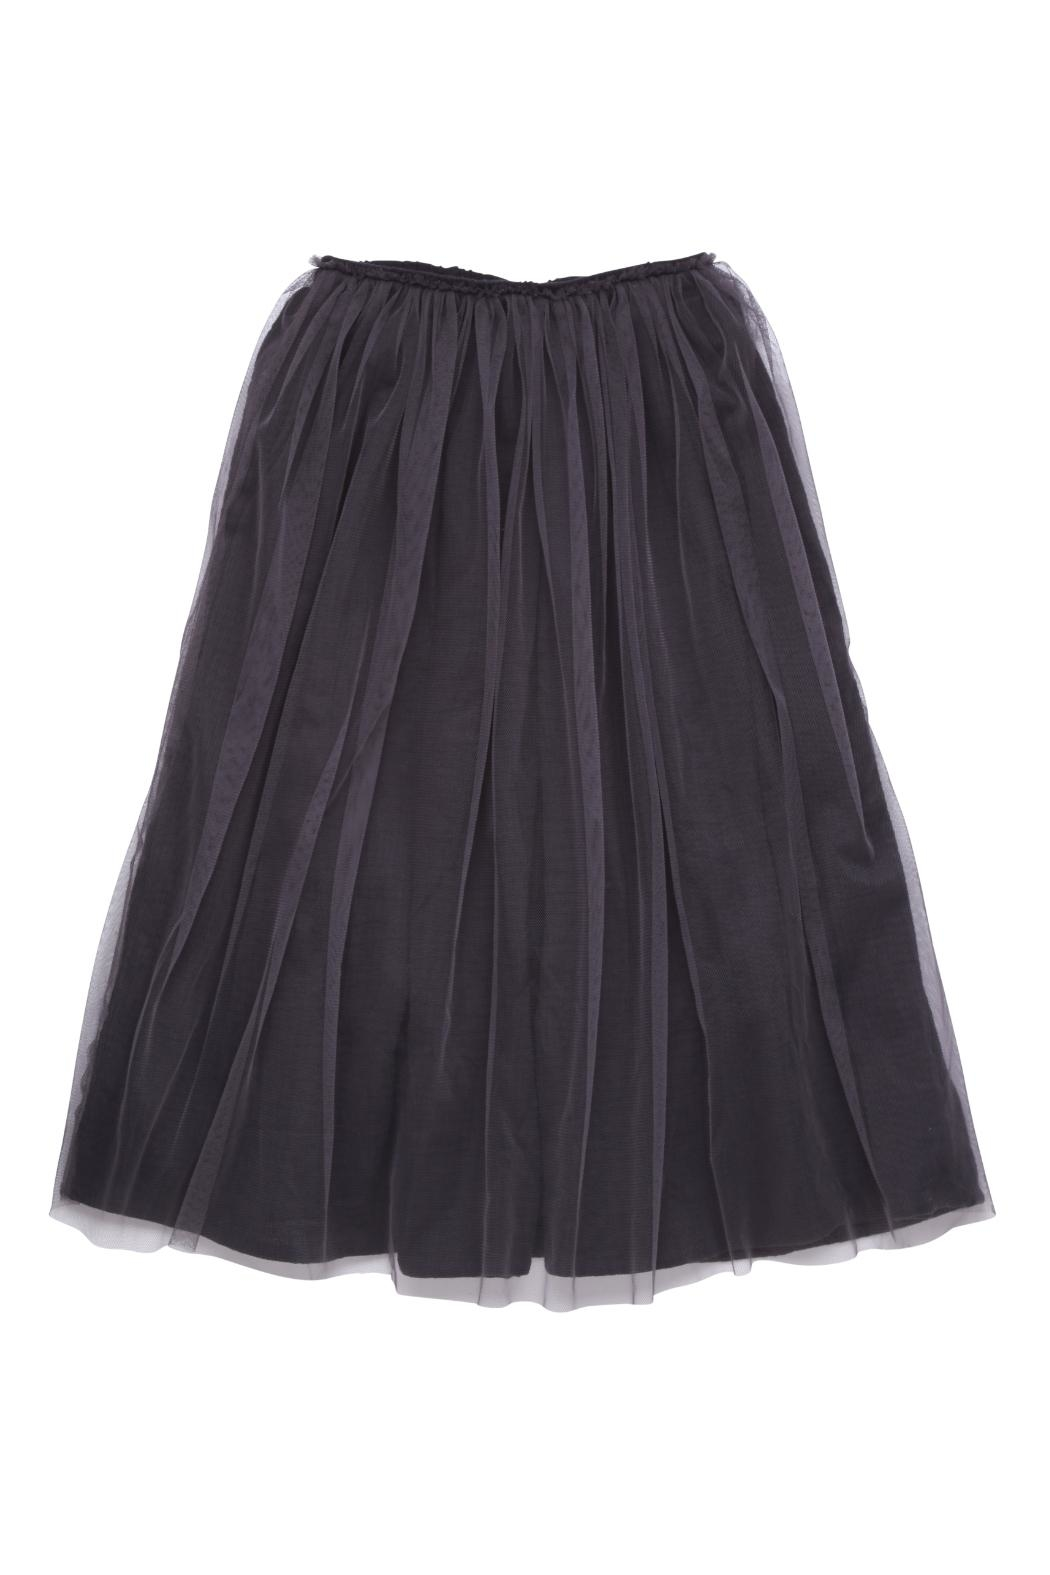 Rock Your Baby Black Tulle Skirt - Front Cropped Image